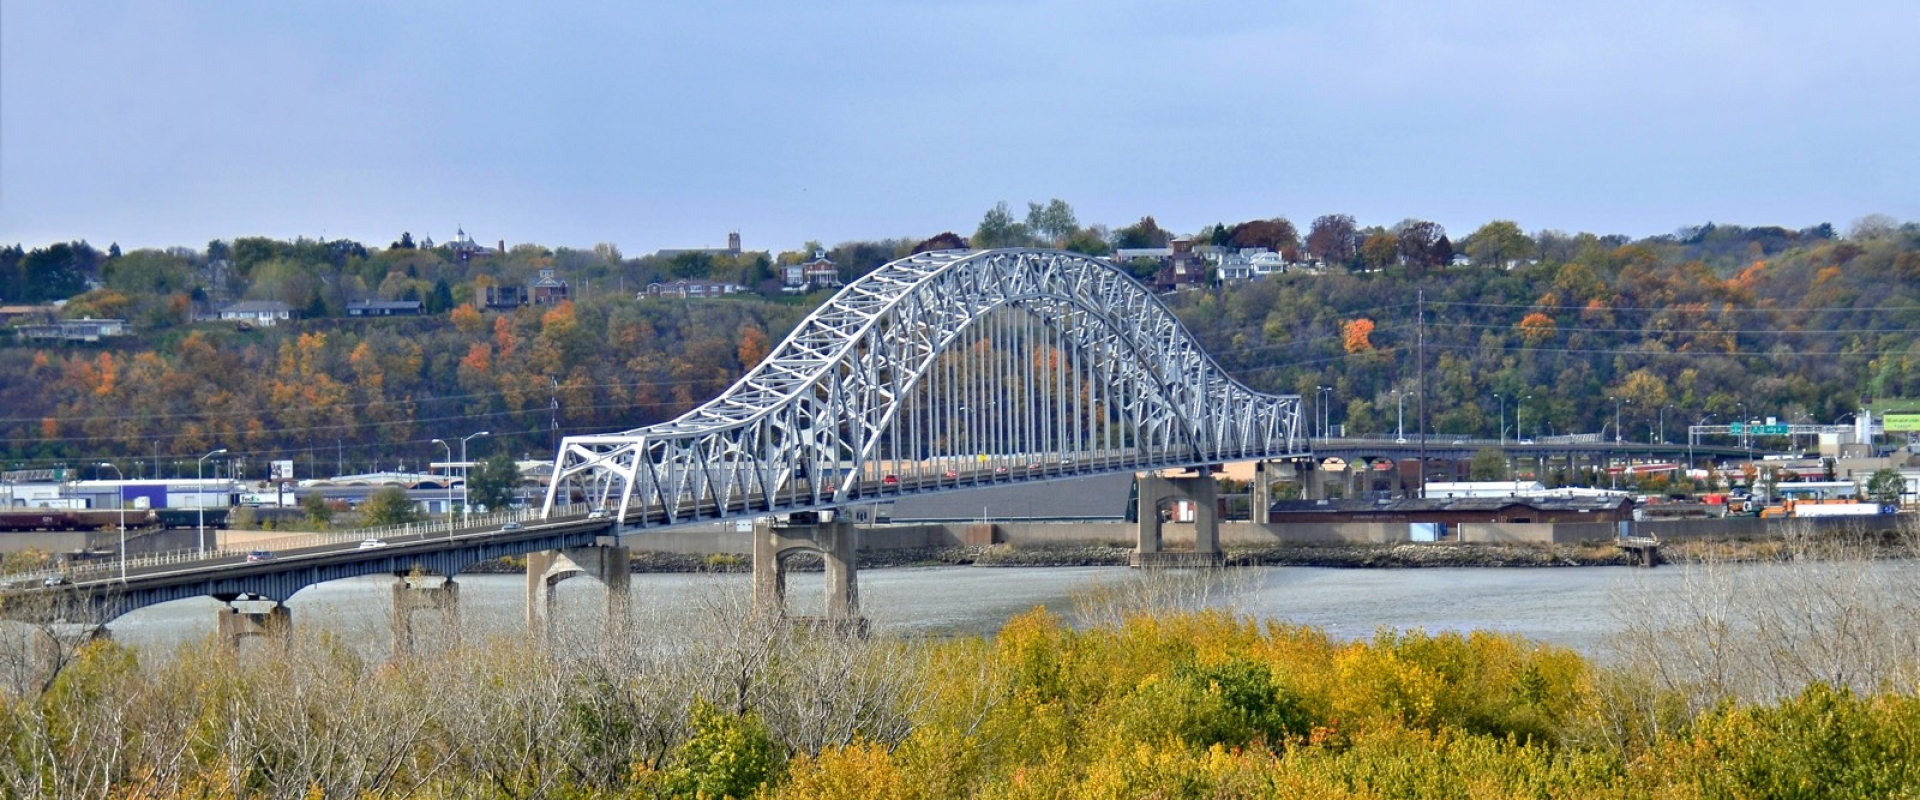 Dubuque_Iowa_Julien_Dubuque_Bridge